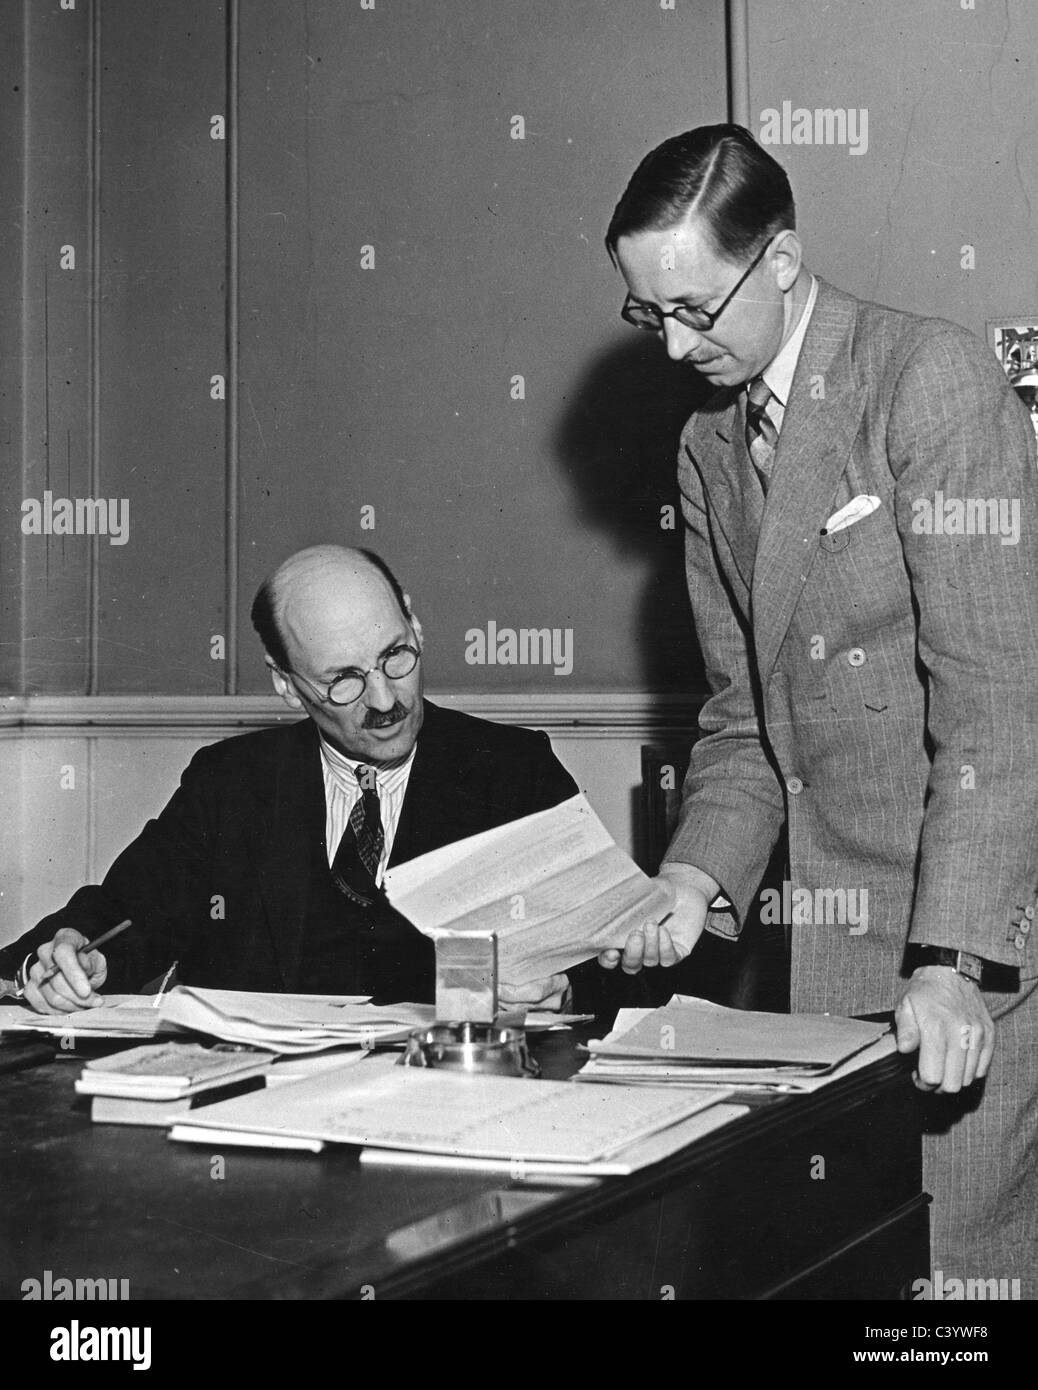 CLEMENT ATTLEE (1883-1967) as British Labour Prime Minister in 1946 with one of his Secretaries - Stock Image